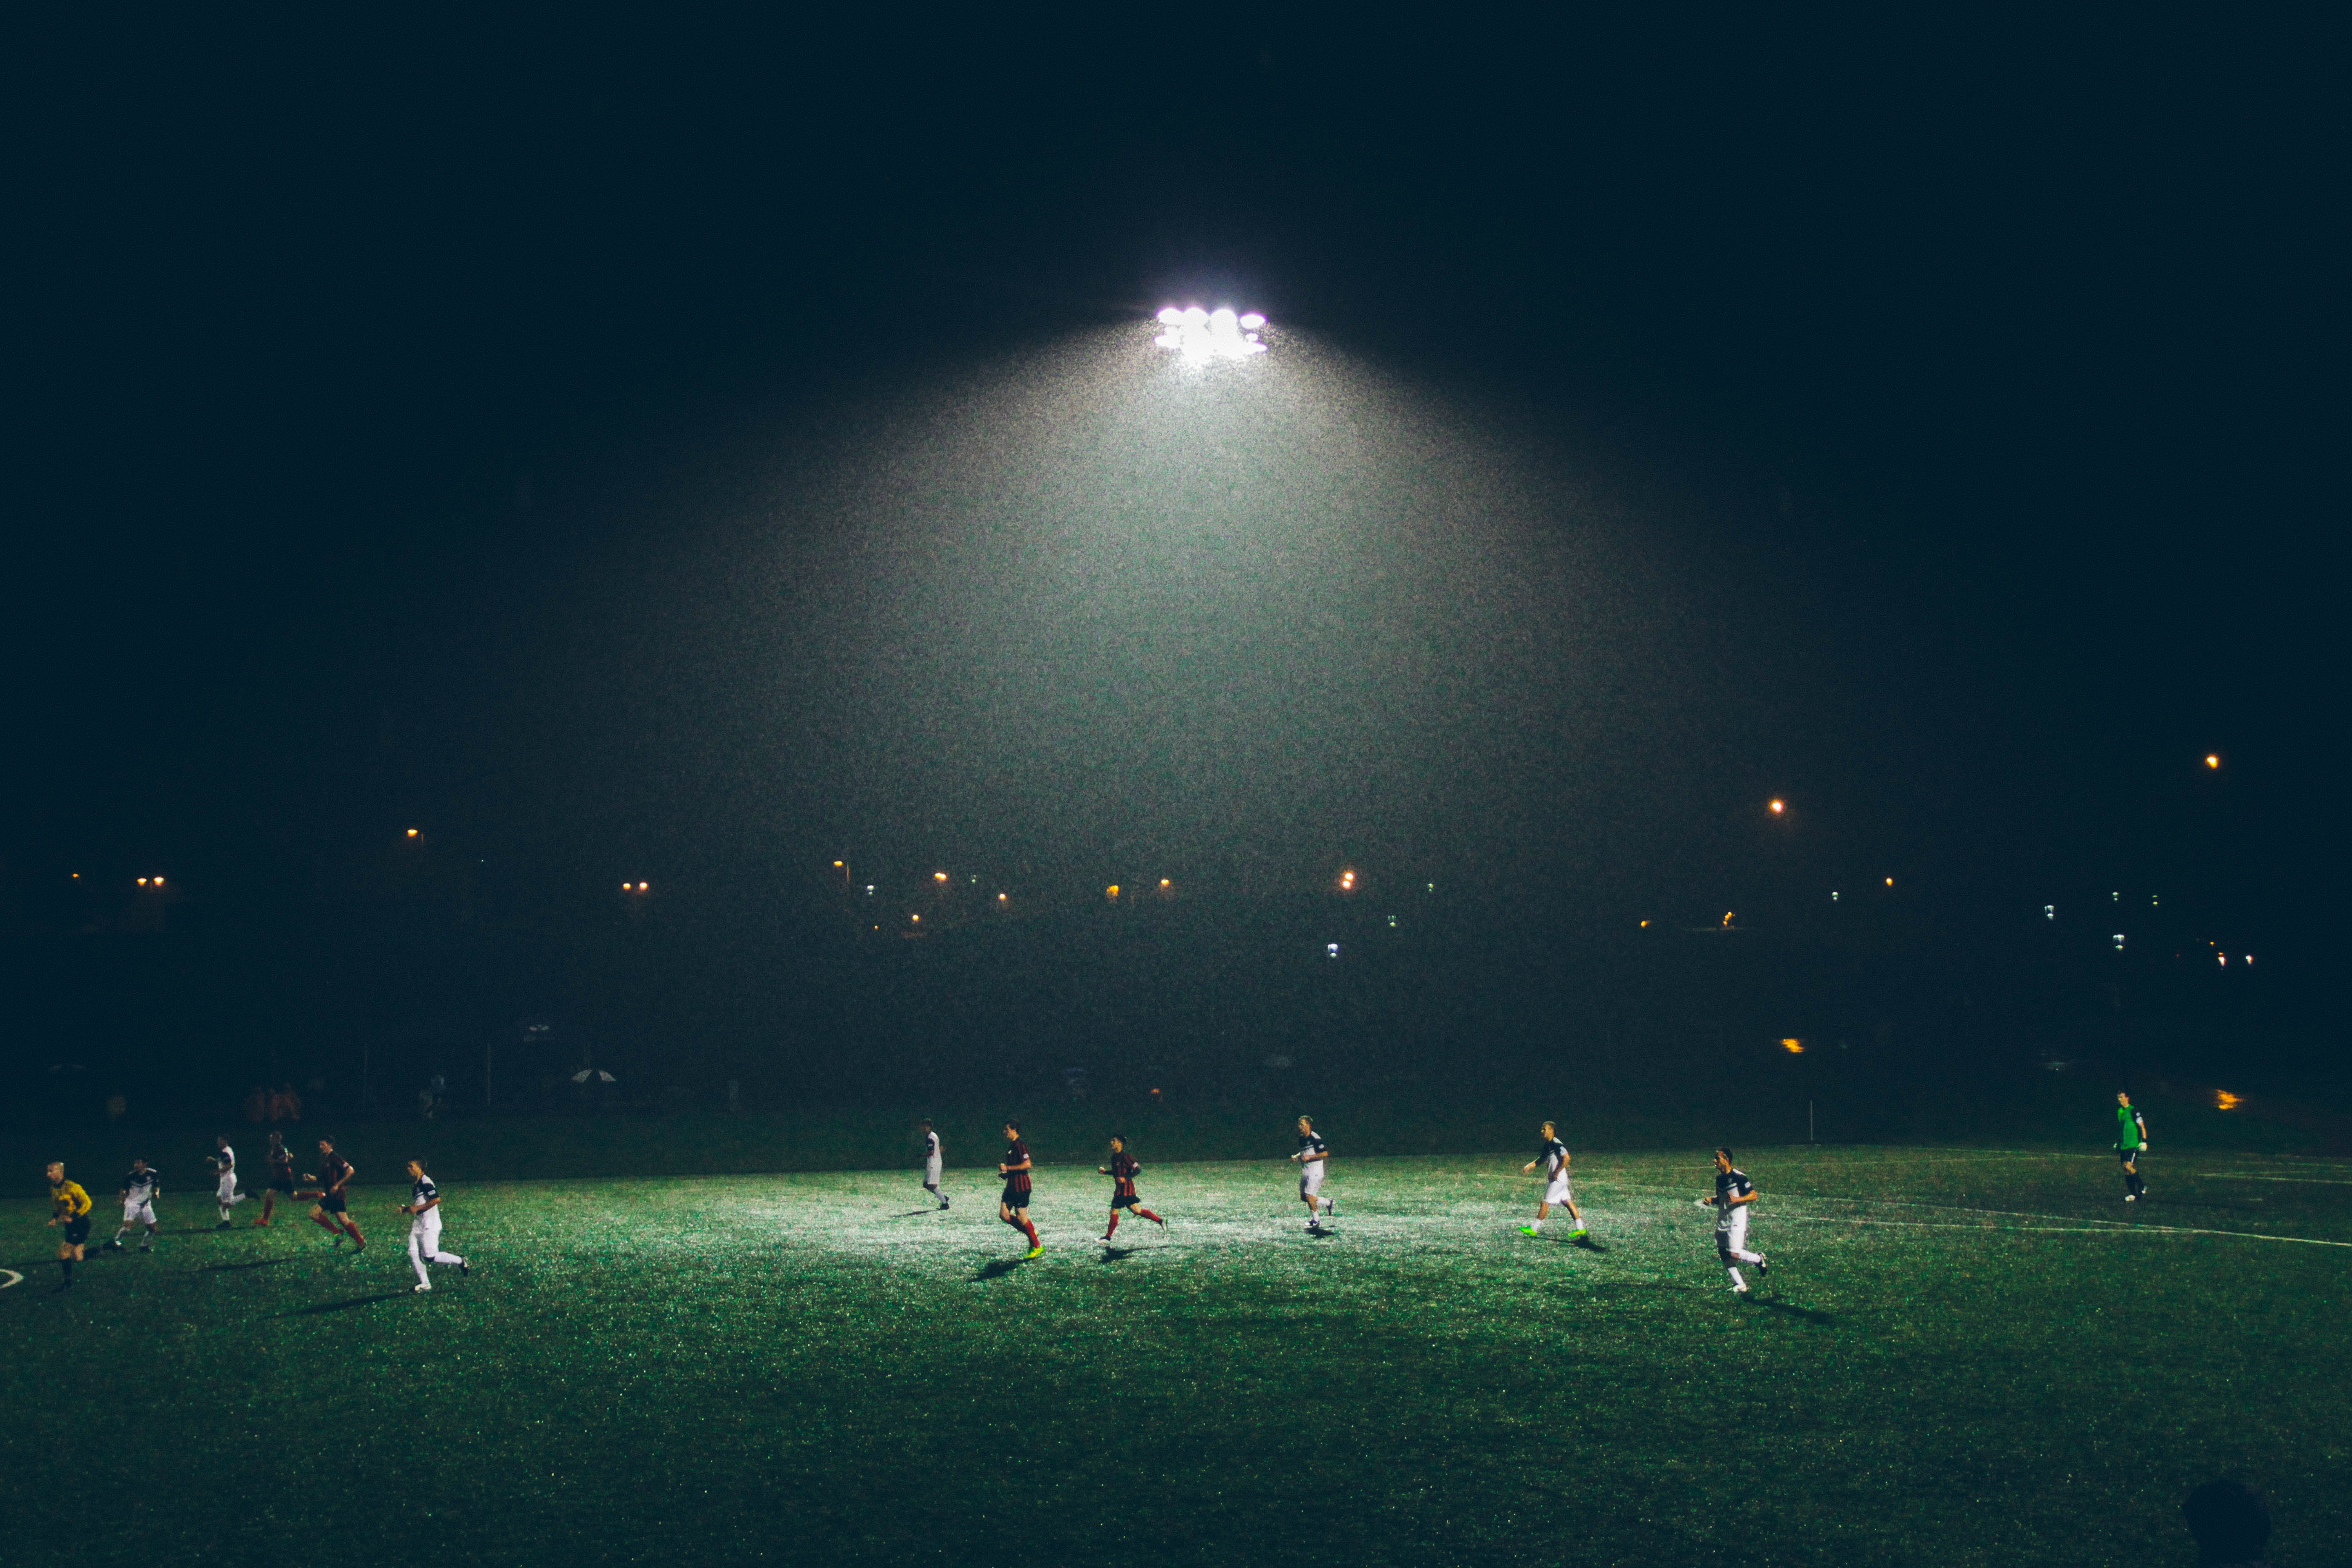 night game of soccer